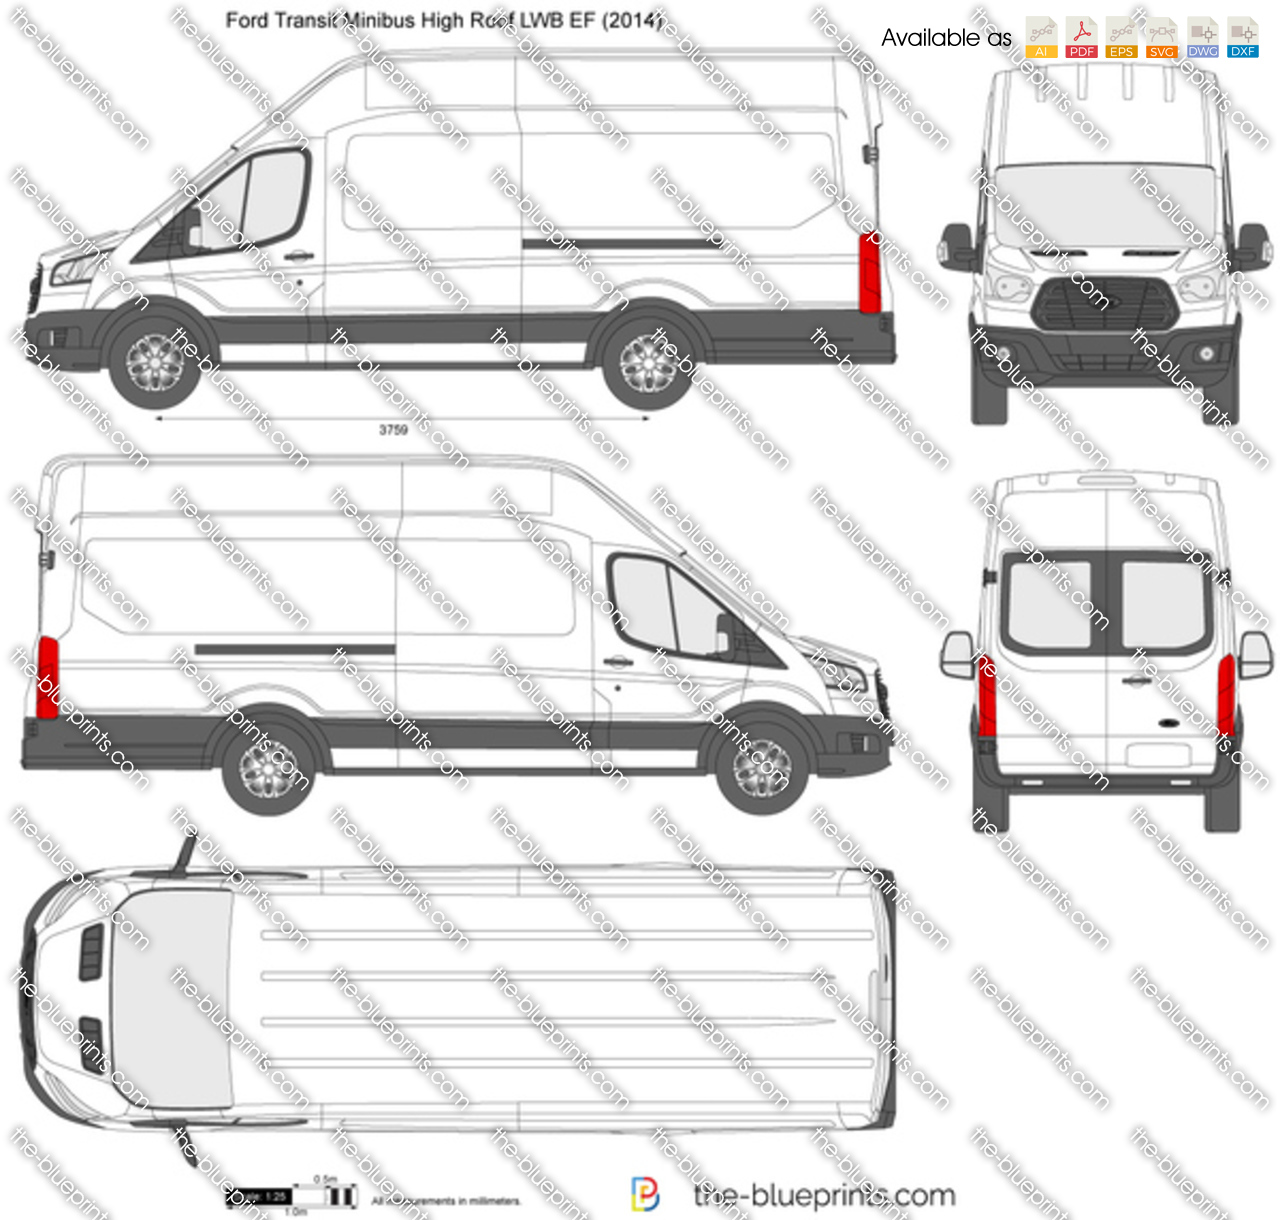 Ford Transit Minibus High Roof Lwb Ef Vector Drawing